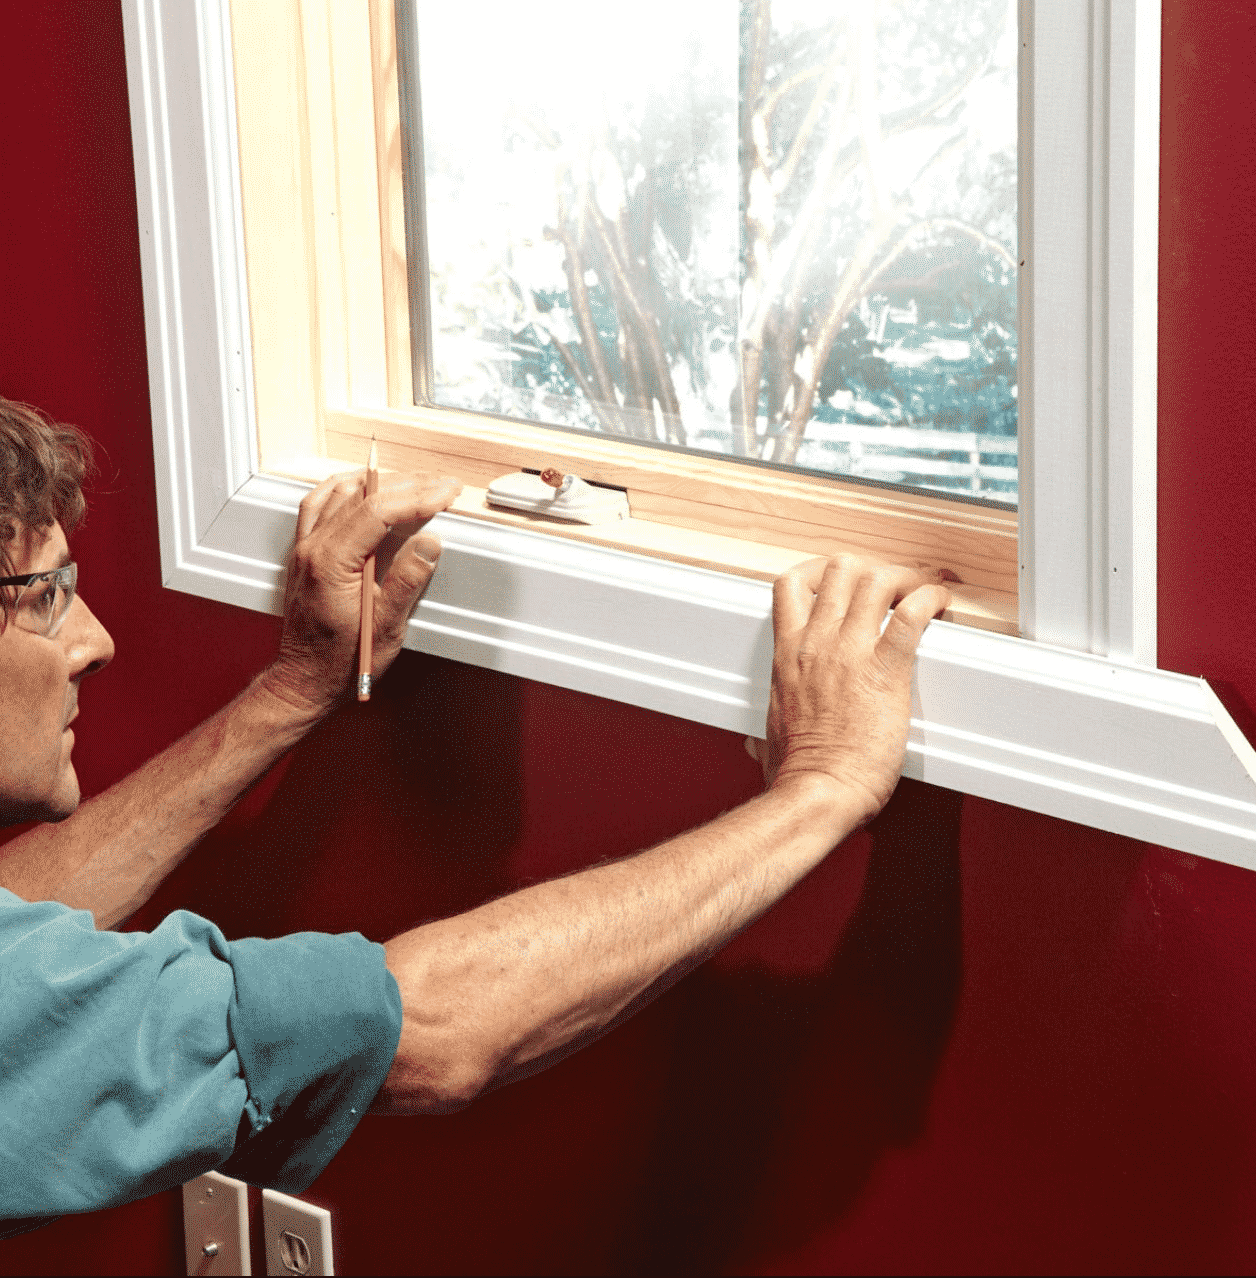 Use Window Trim To Protect Your Property And Improve The Appearance Of Your Home